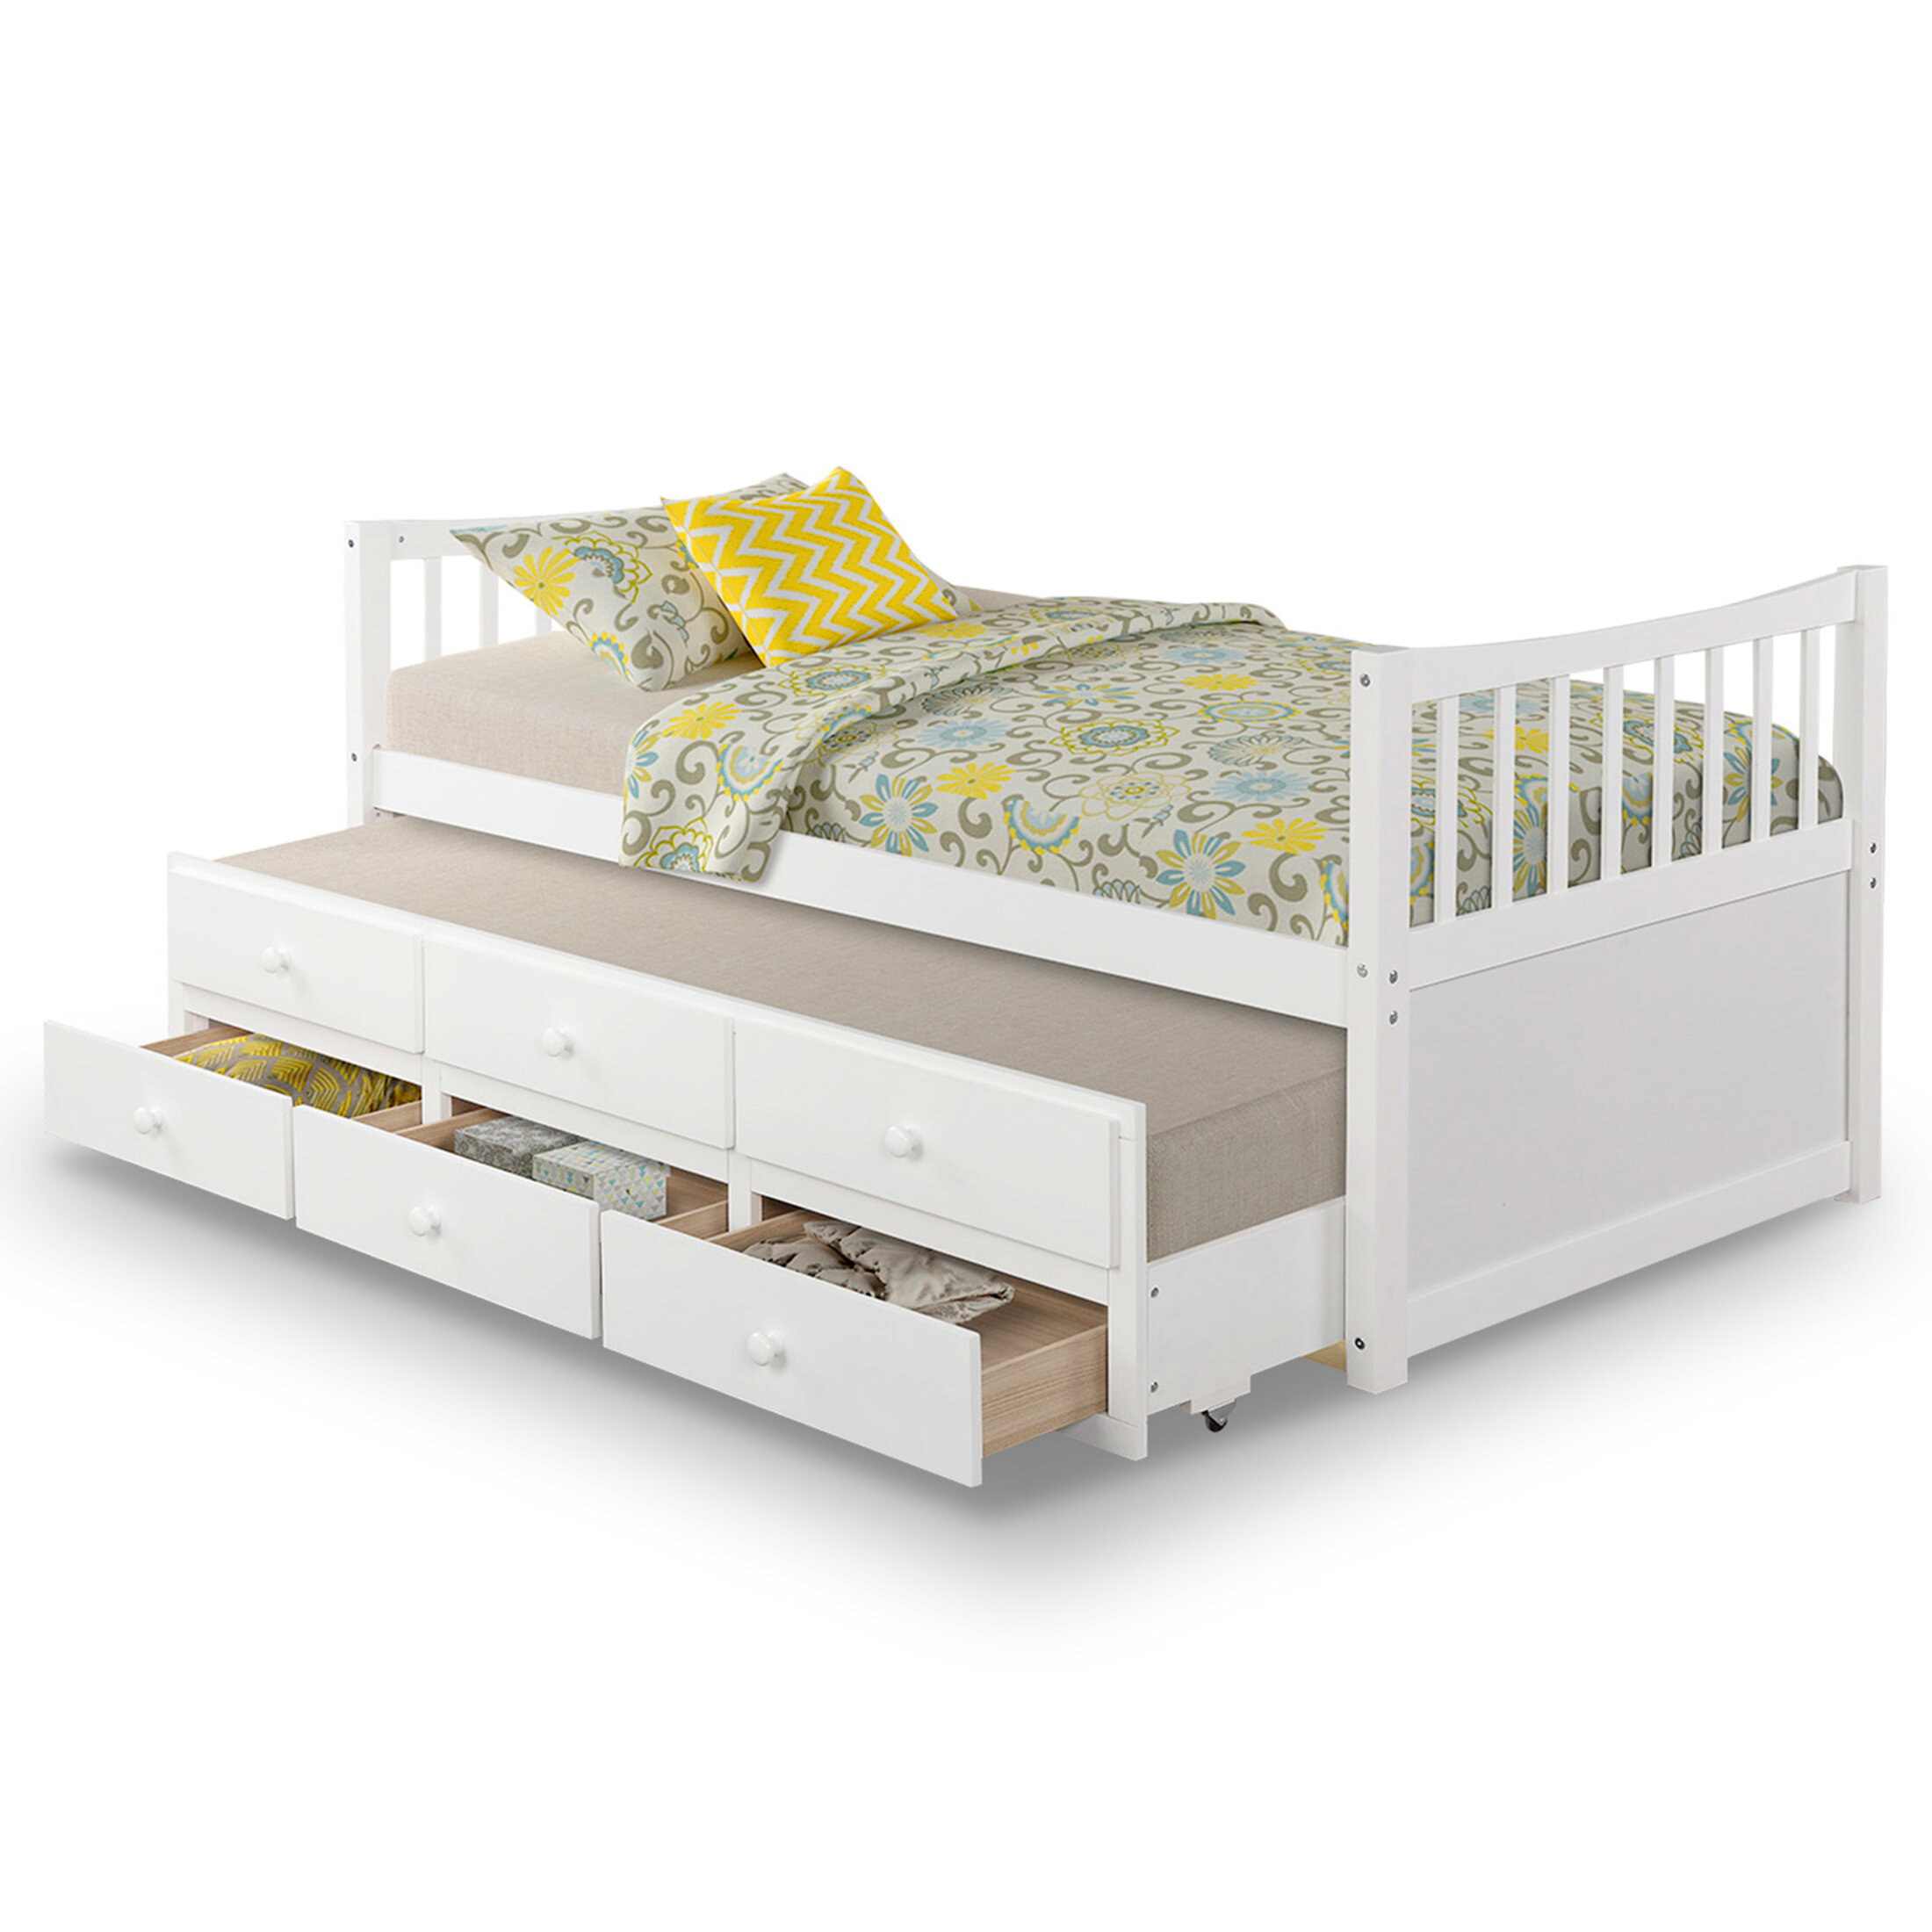 Harriet Bee Solid Wood Twin Size Daybed Kids Captain S Bed With Trundle And 3 Storage Drawers No Box Spring Required Grey Wayfair Ca